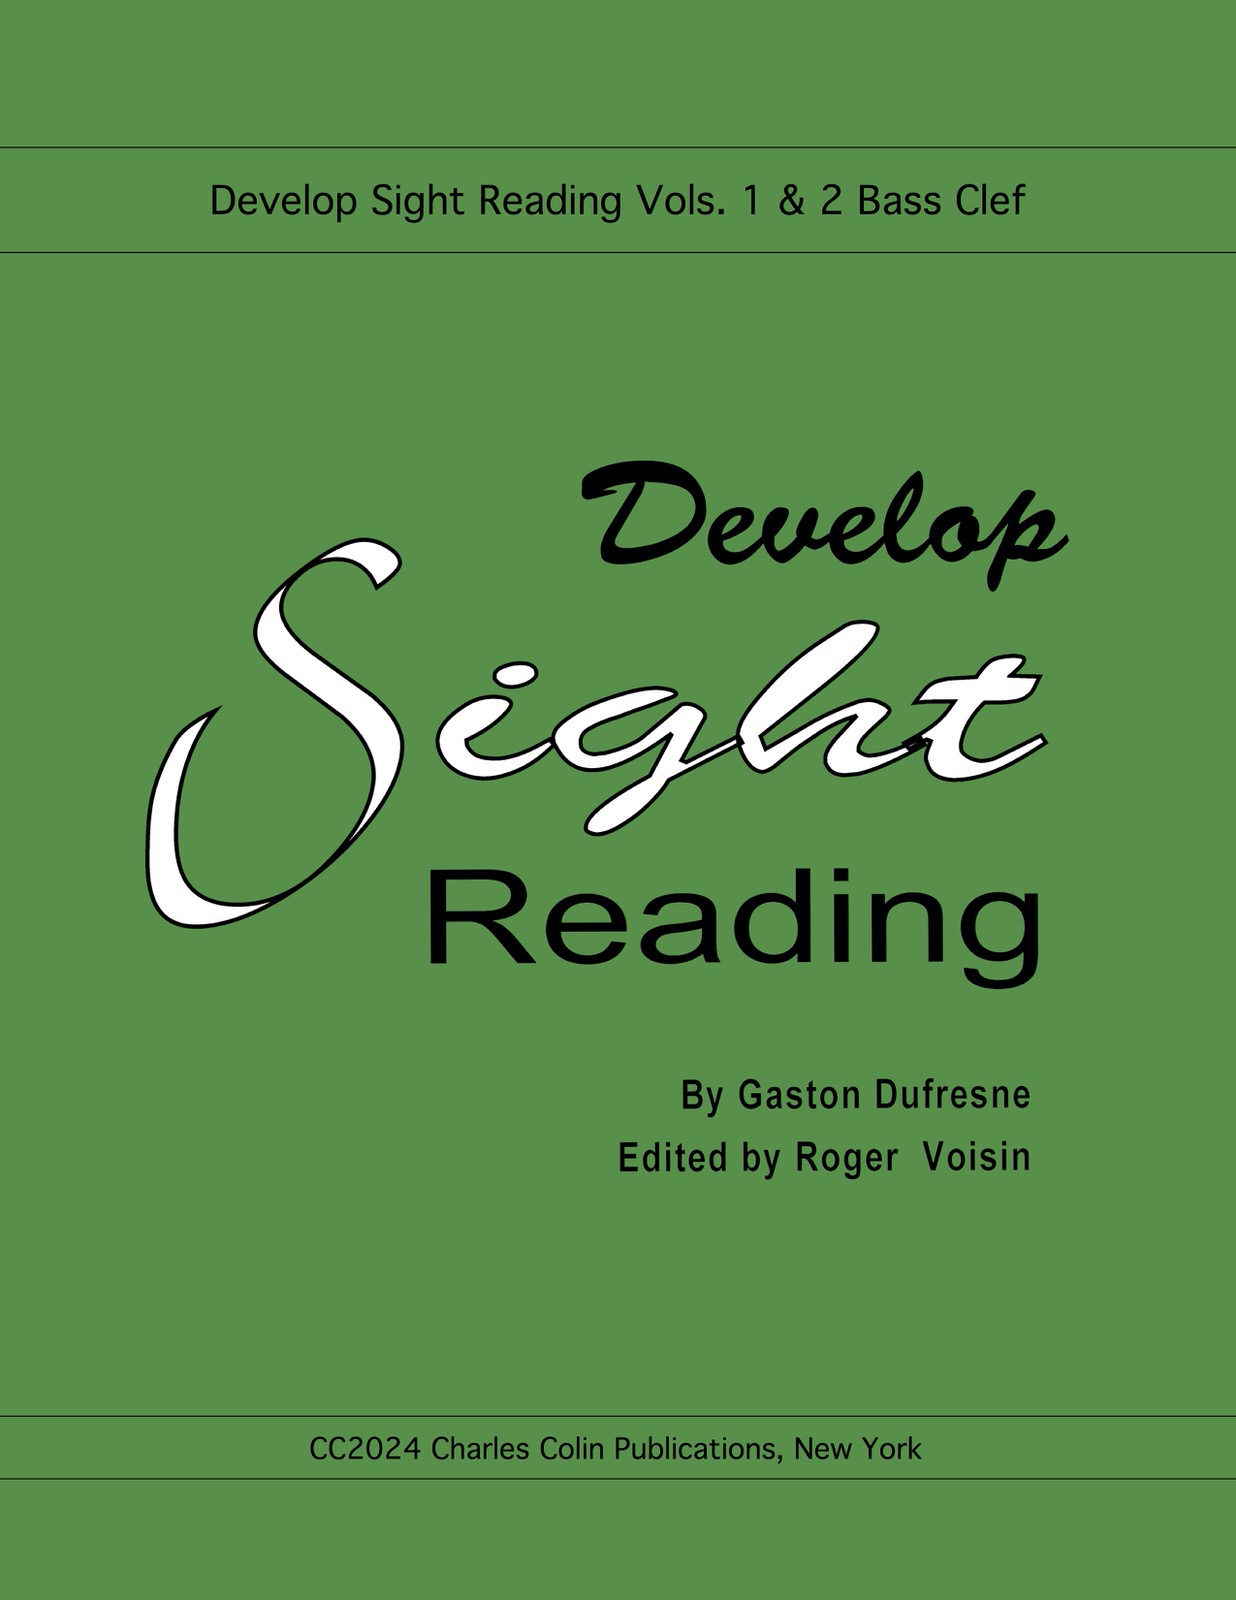 Dufrense, Develop Sight Reading (Bass Clef)-p01